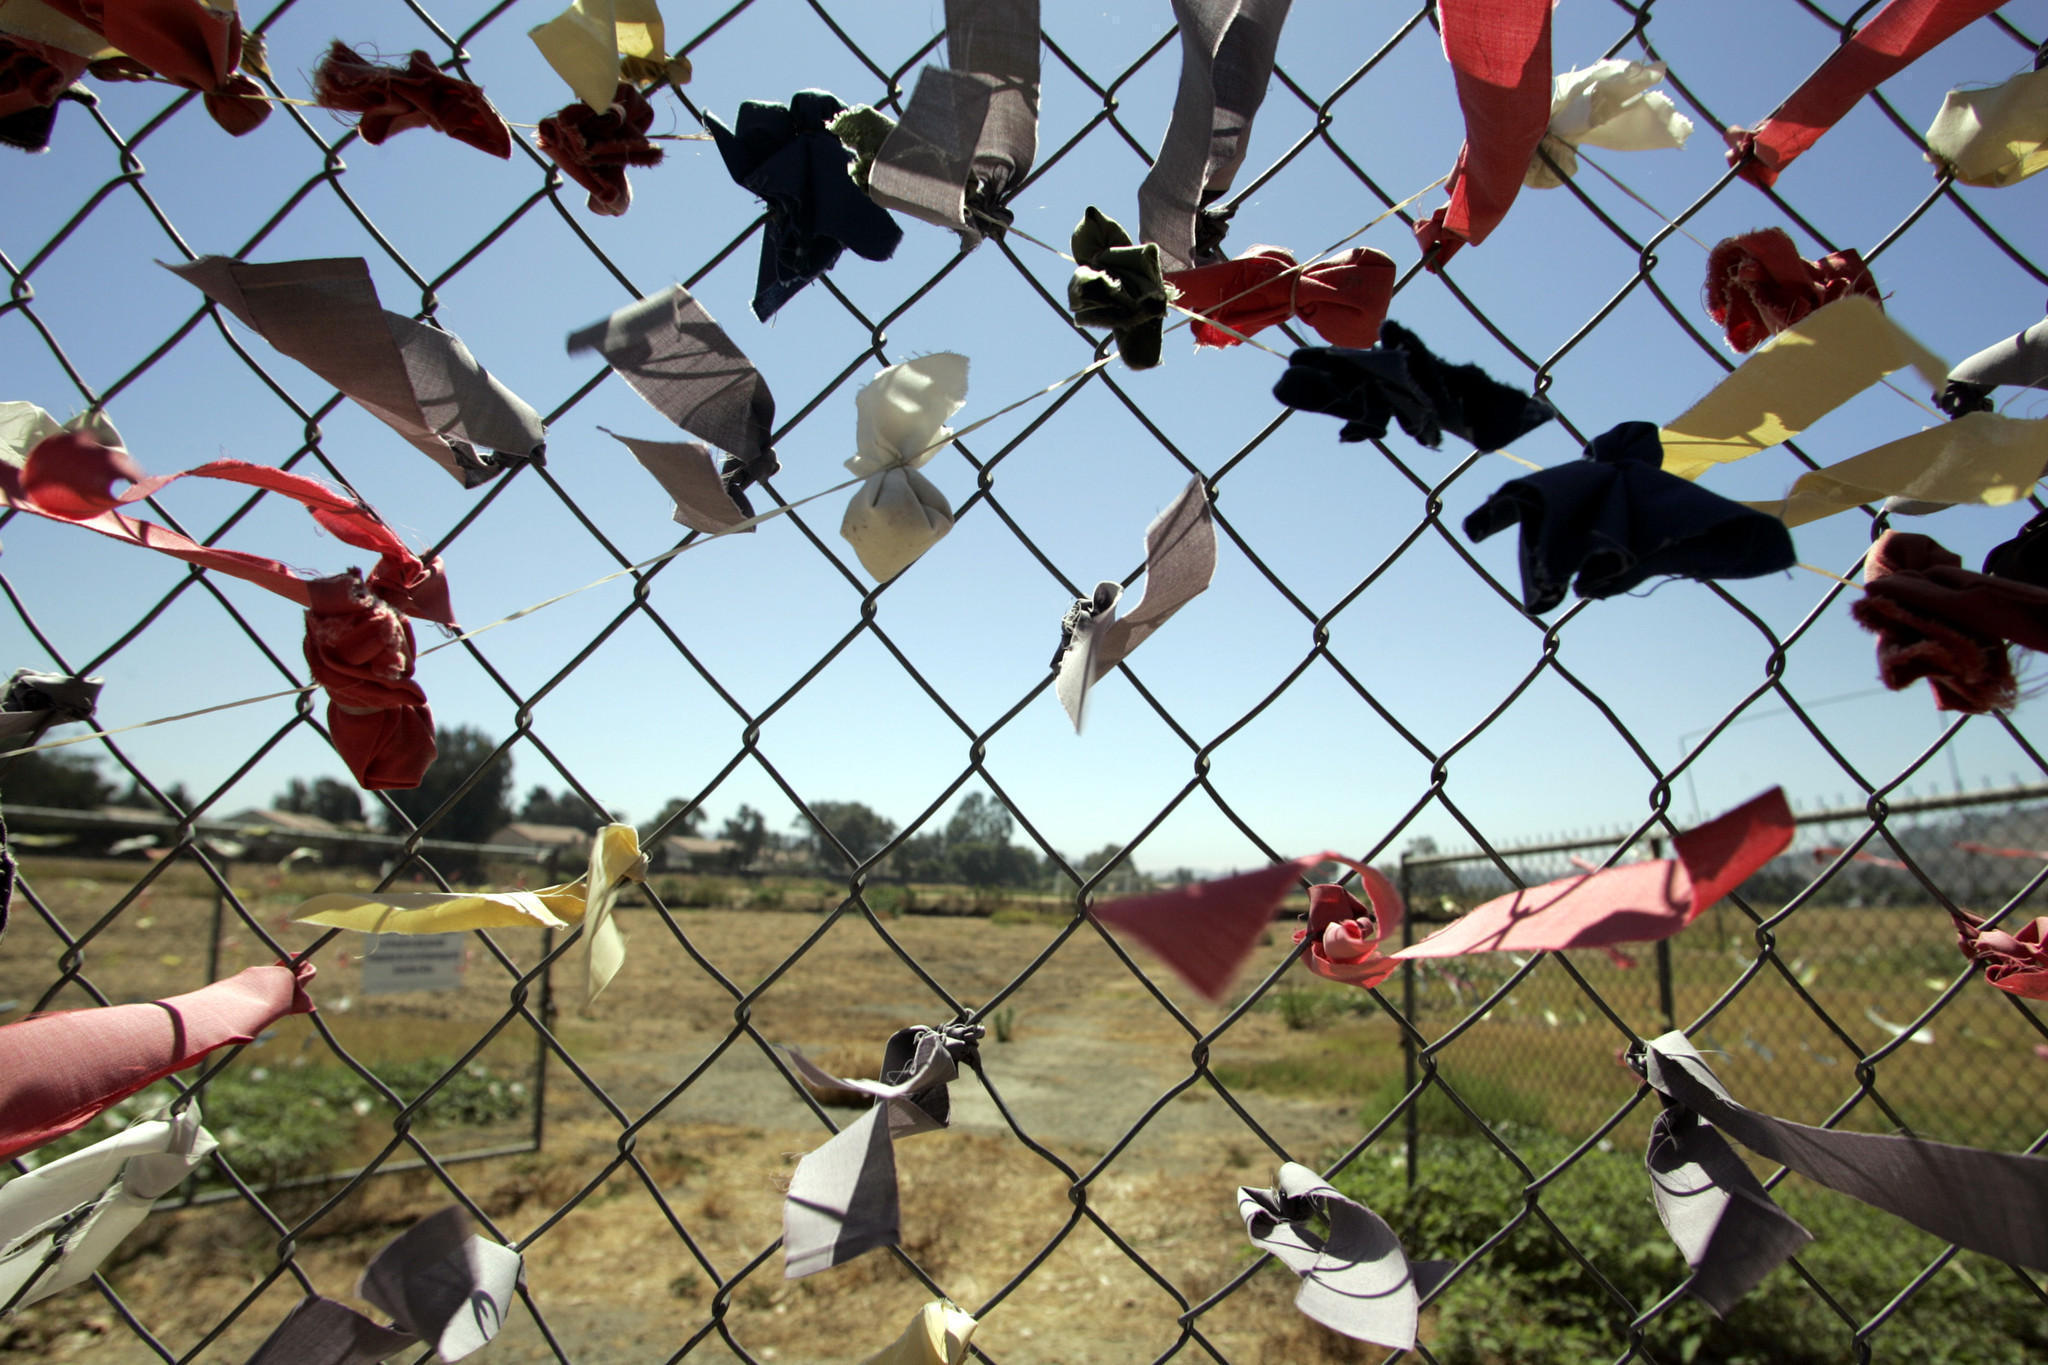 Colored ribbons placed by Juanenos Indians surround sacred burial ground in San Juan Capistrano. Photo credit: Mark Boster/Los Angeles Times